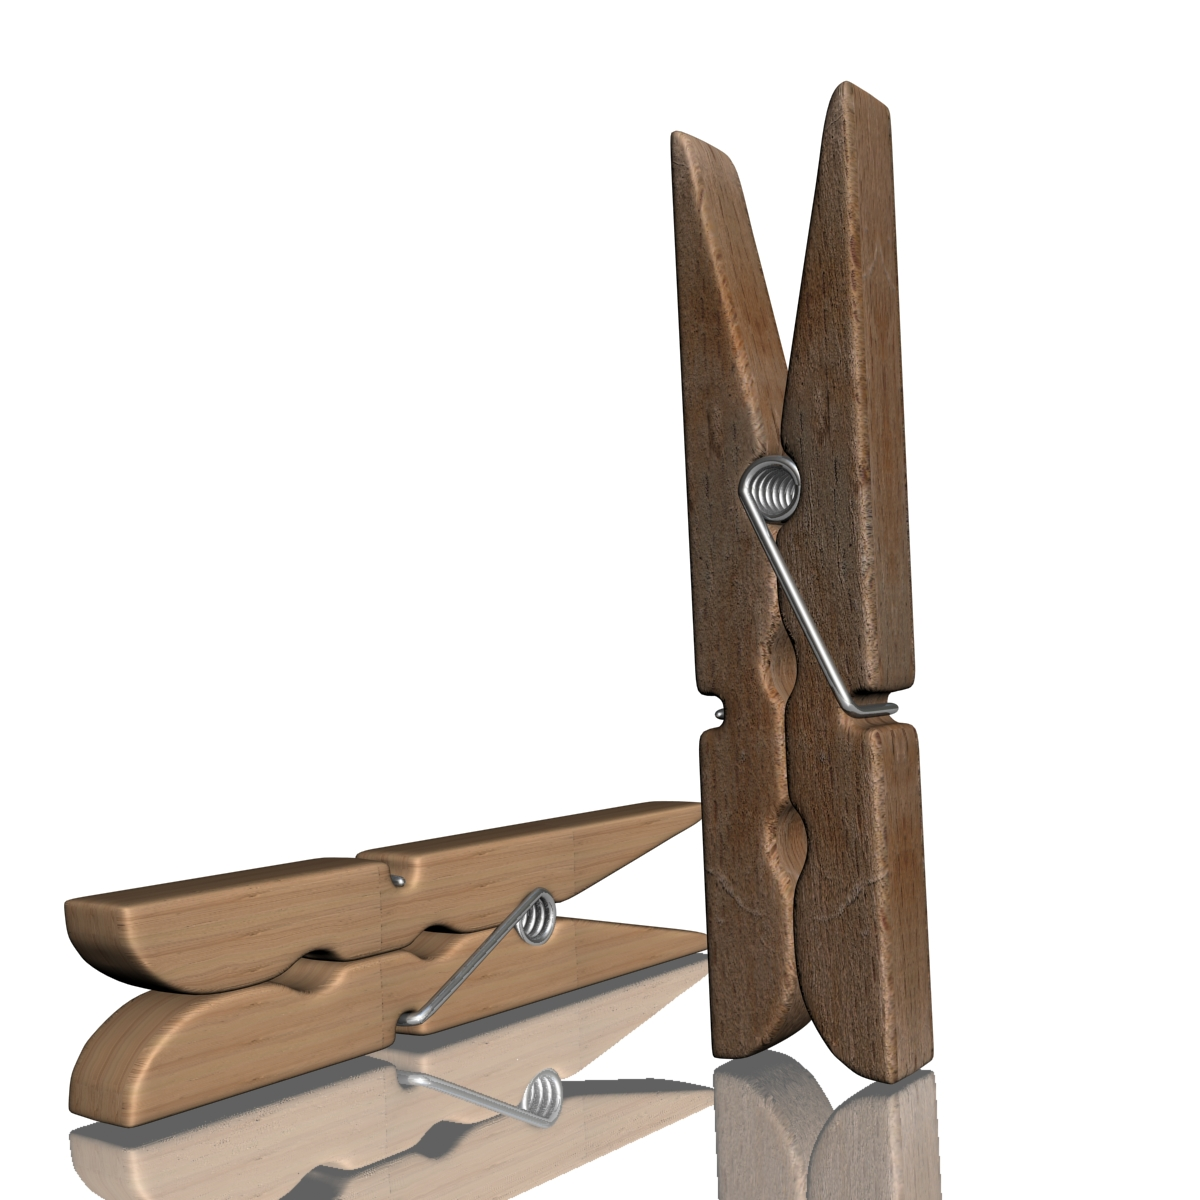 model 02d clothespin-3 3ds max fbx obj 156273